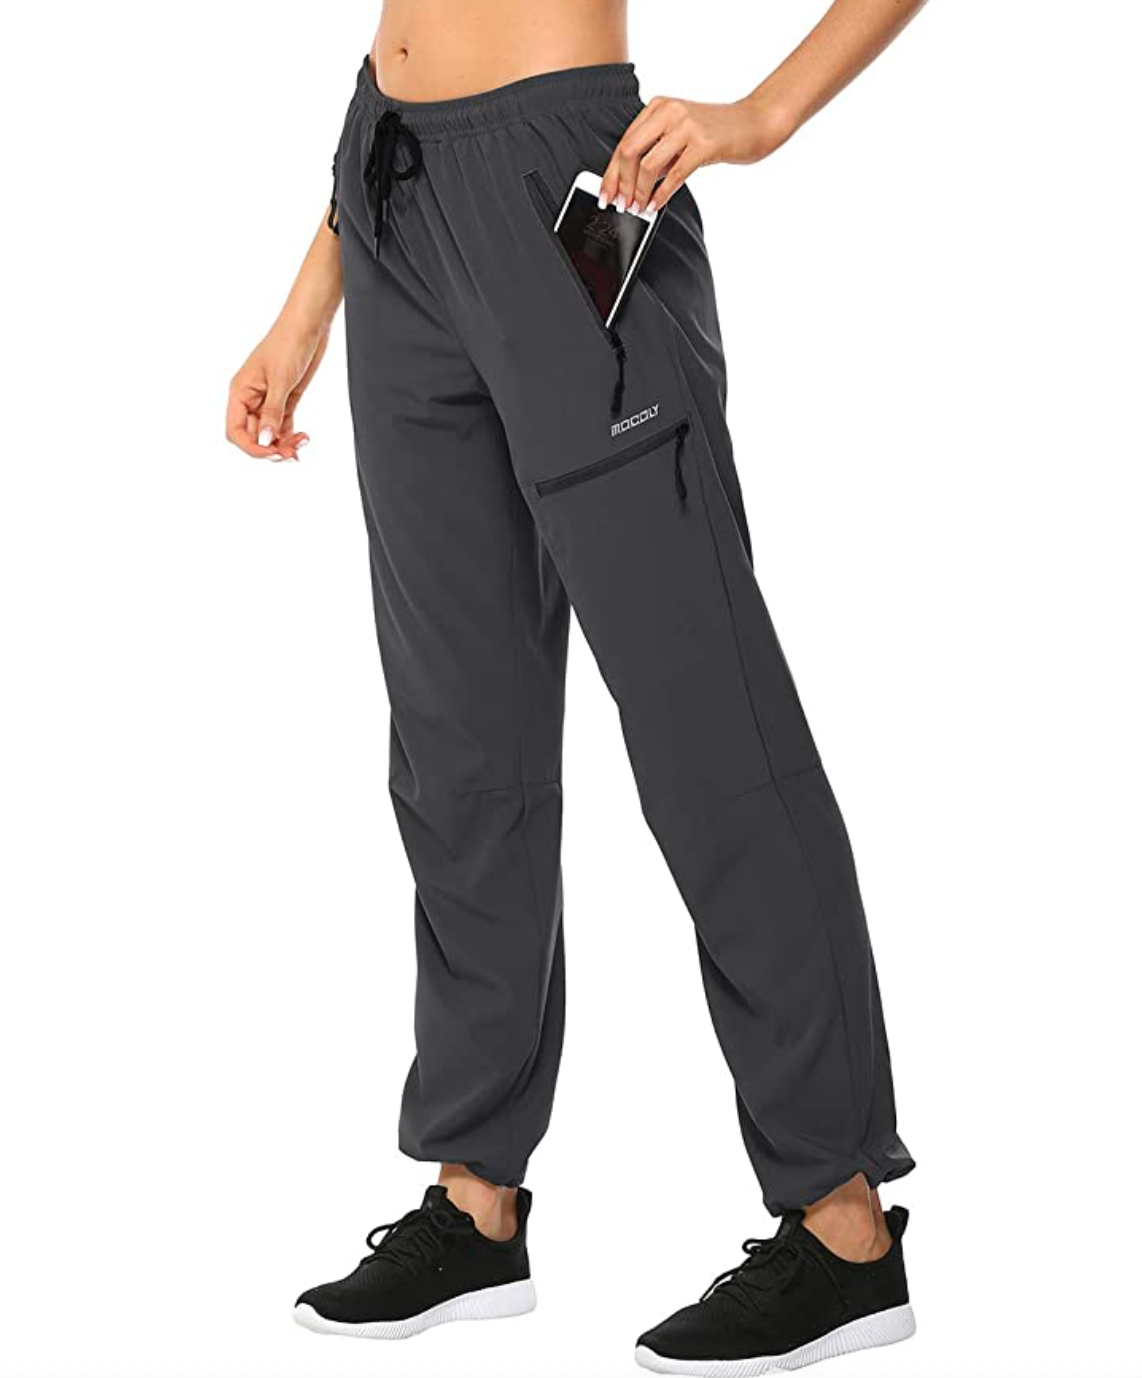 Mocoly hiking pants